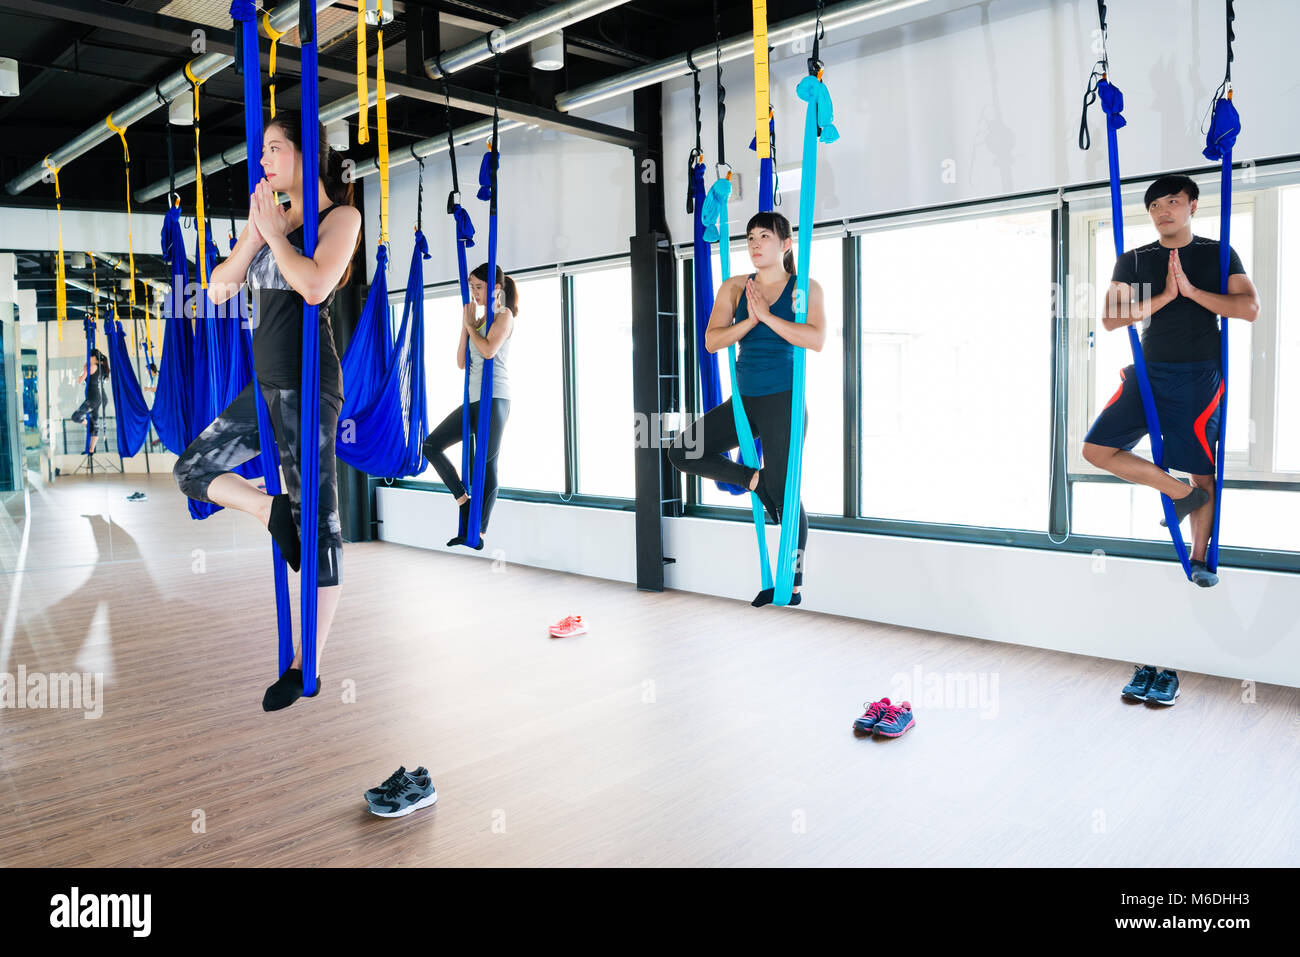 Man Hammock Aerial Yoga Stock Photos Amp Man Hammock Aerial